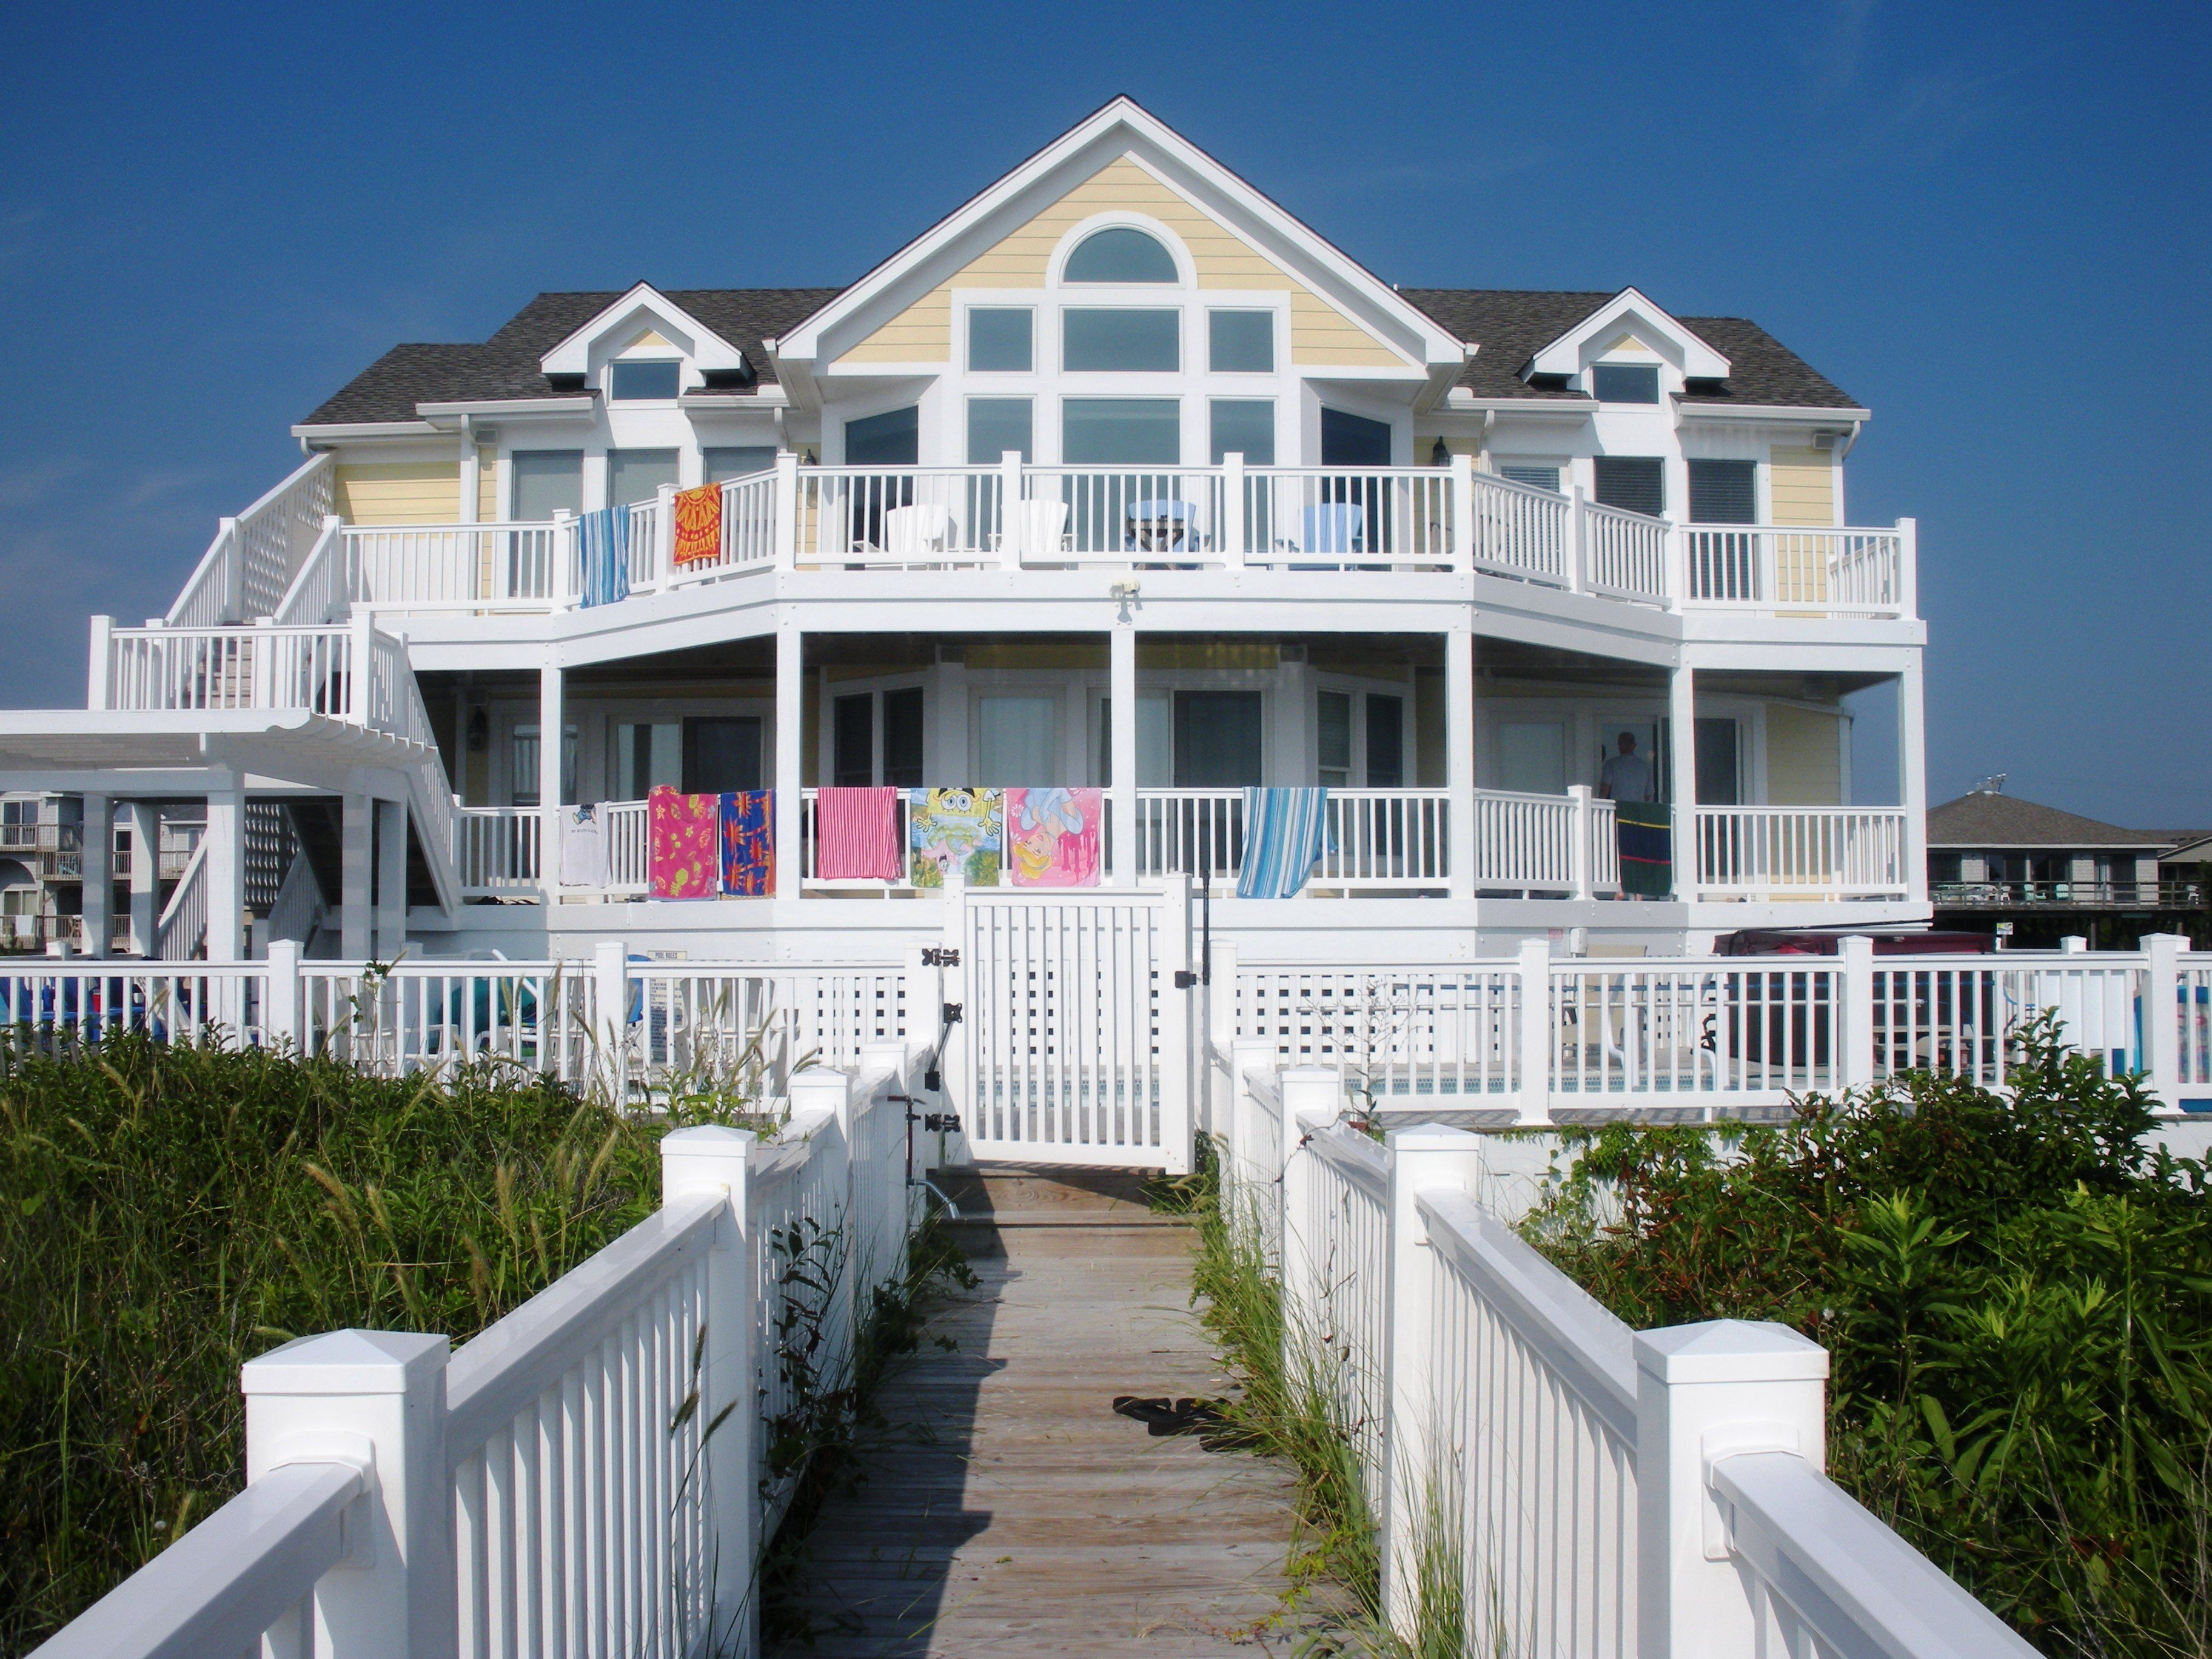 beach rental ext hill company rentals ocean banks cottage outer twiddy corolla vacation plaza